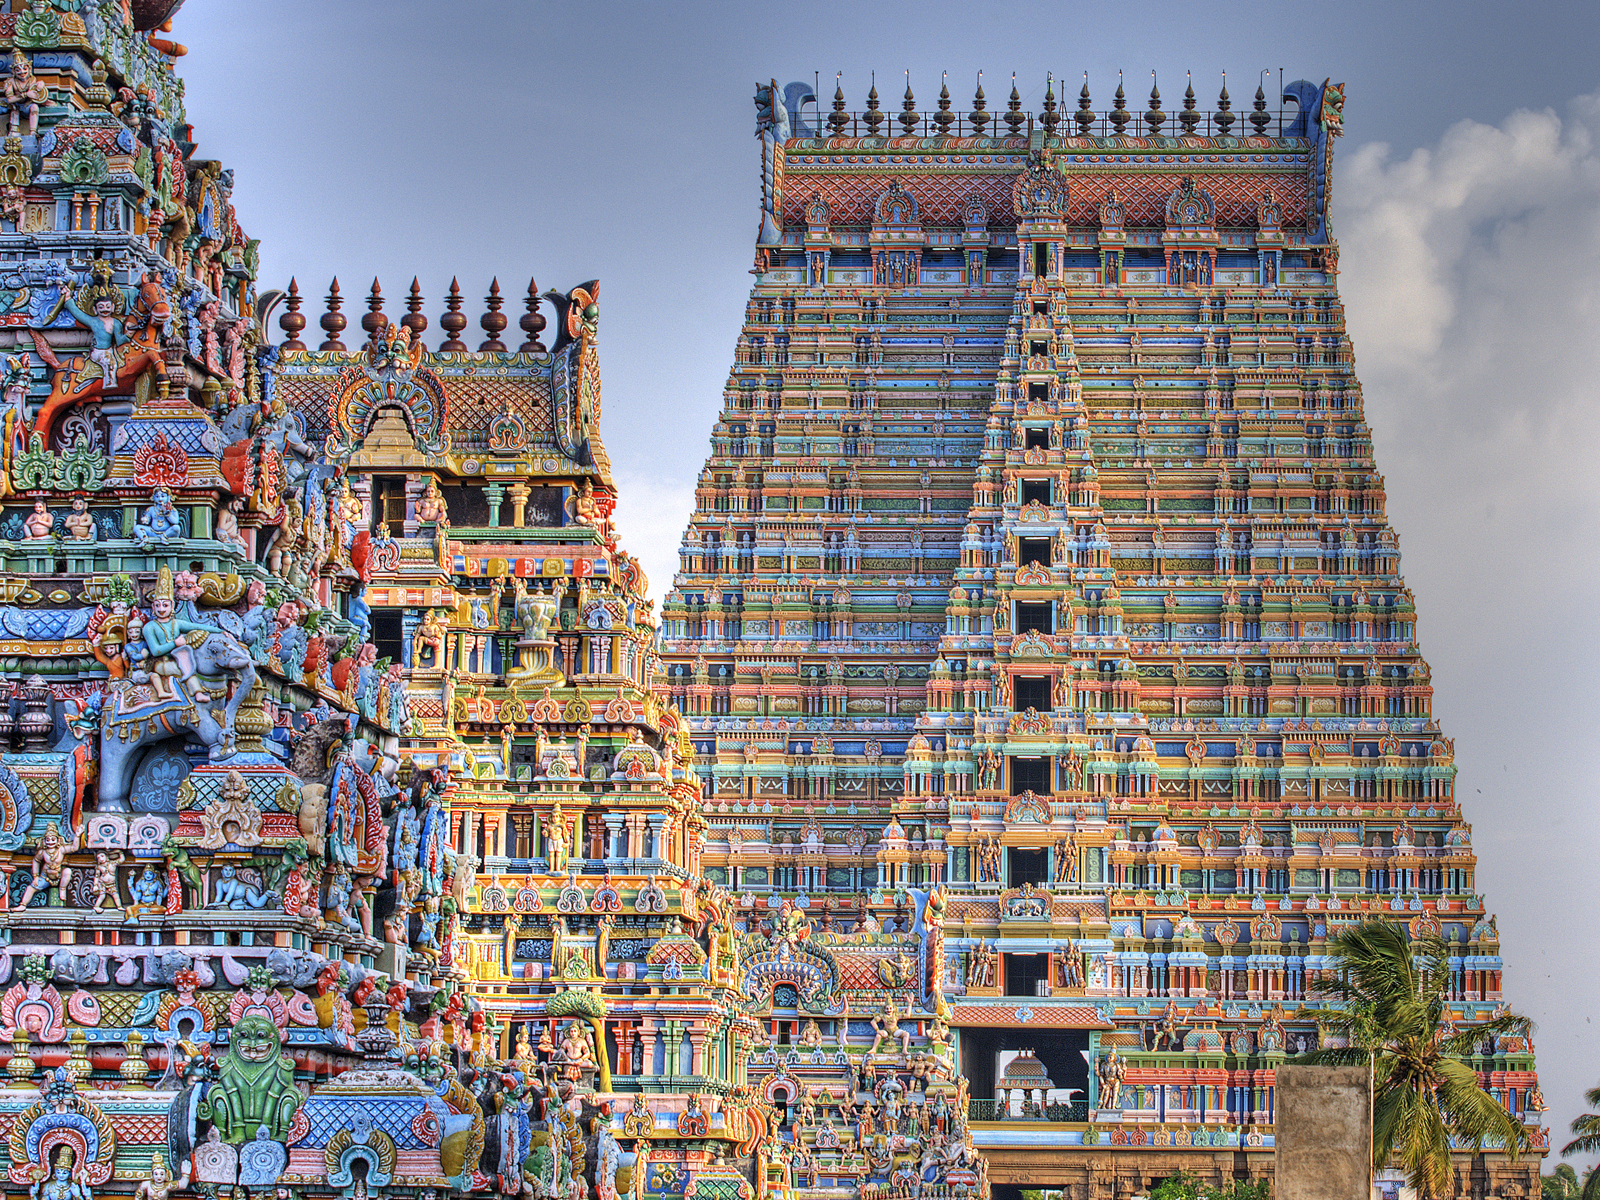 Srirangam Temple The Largest Functioning Temple In The World